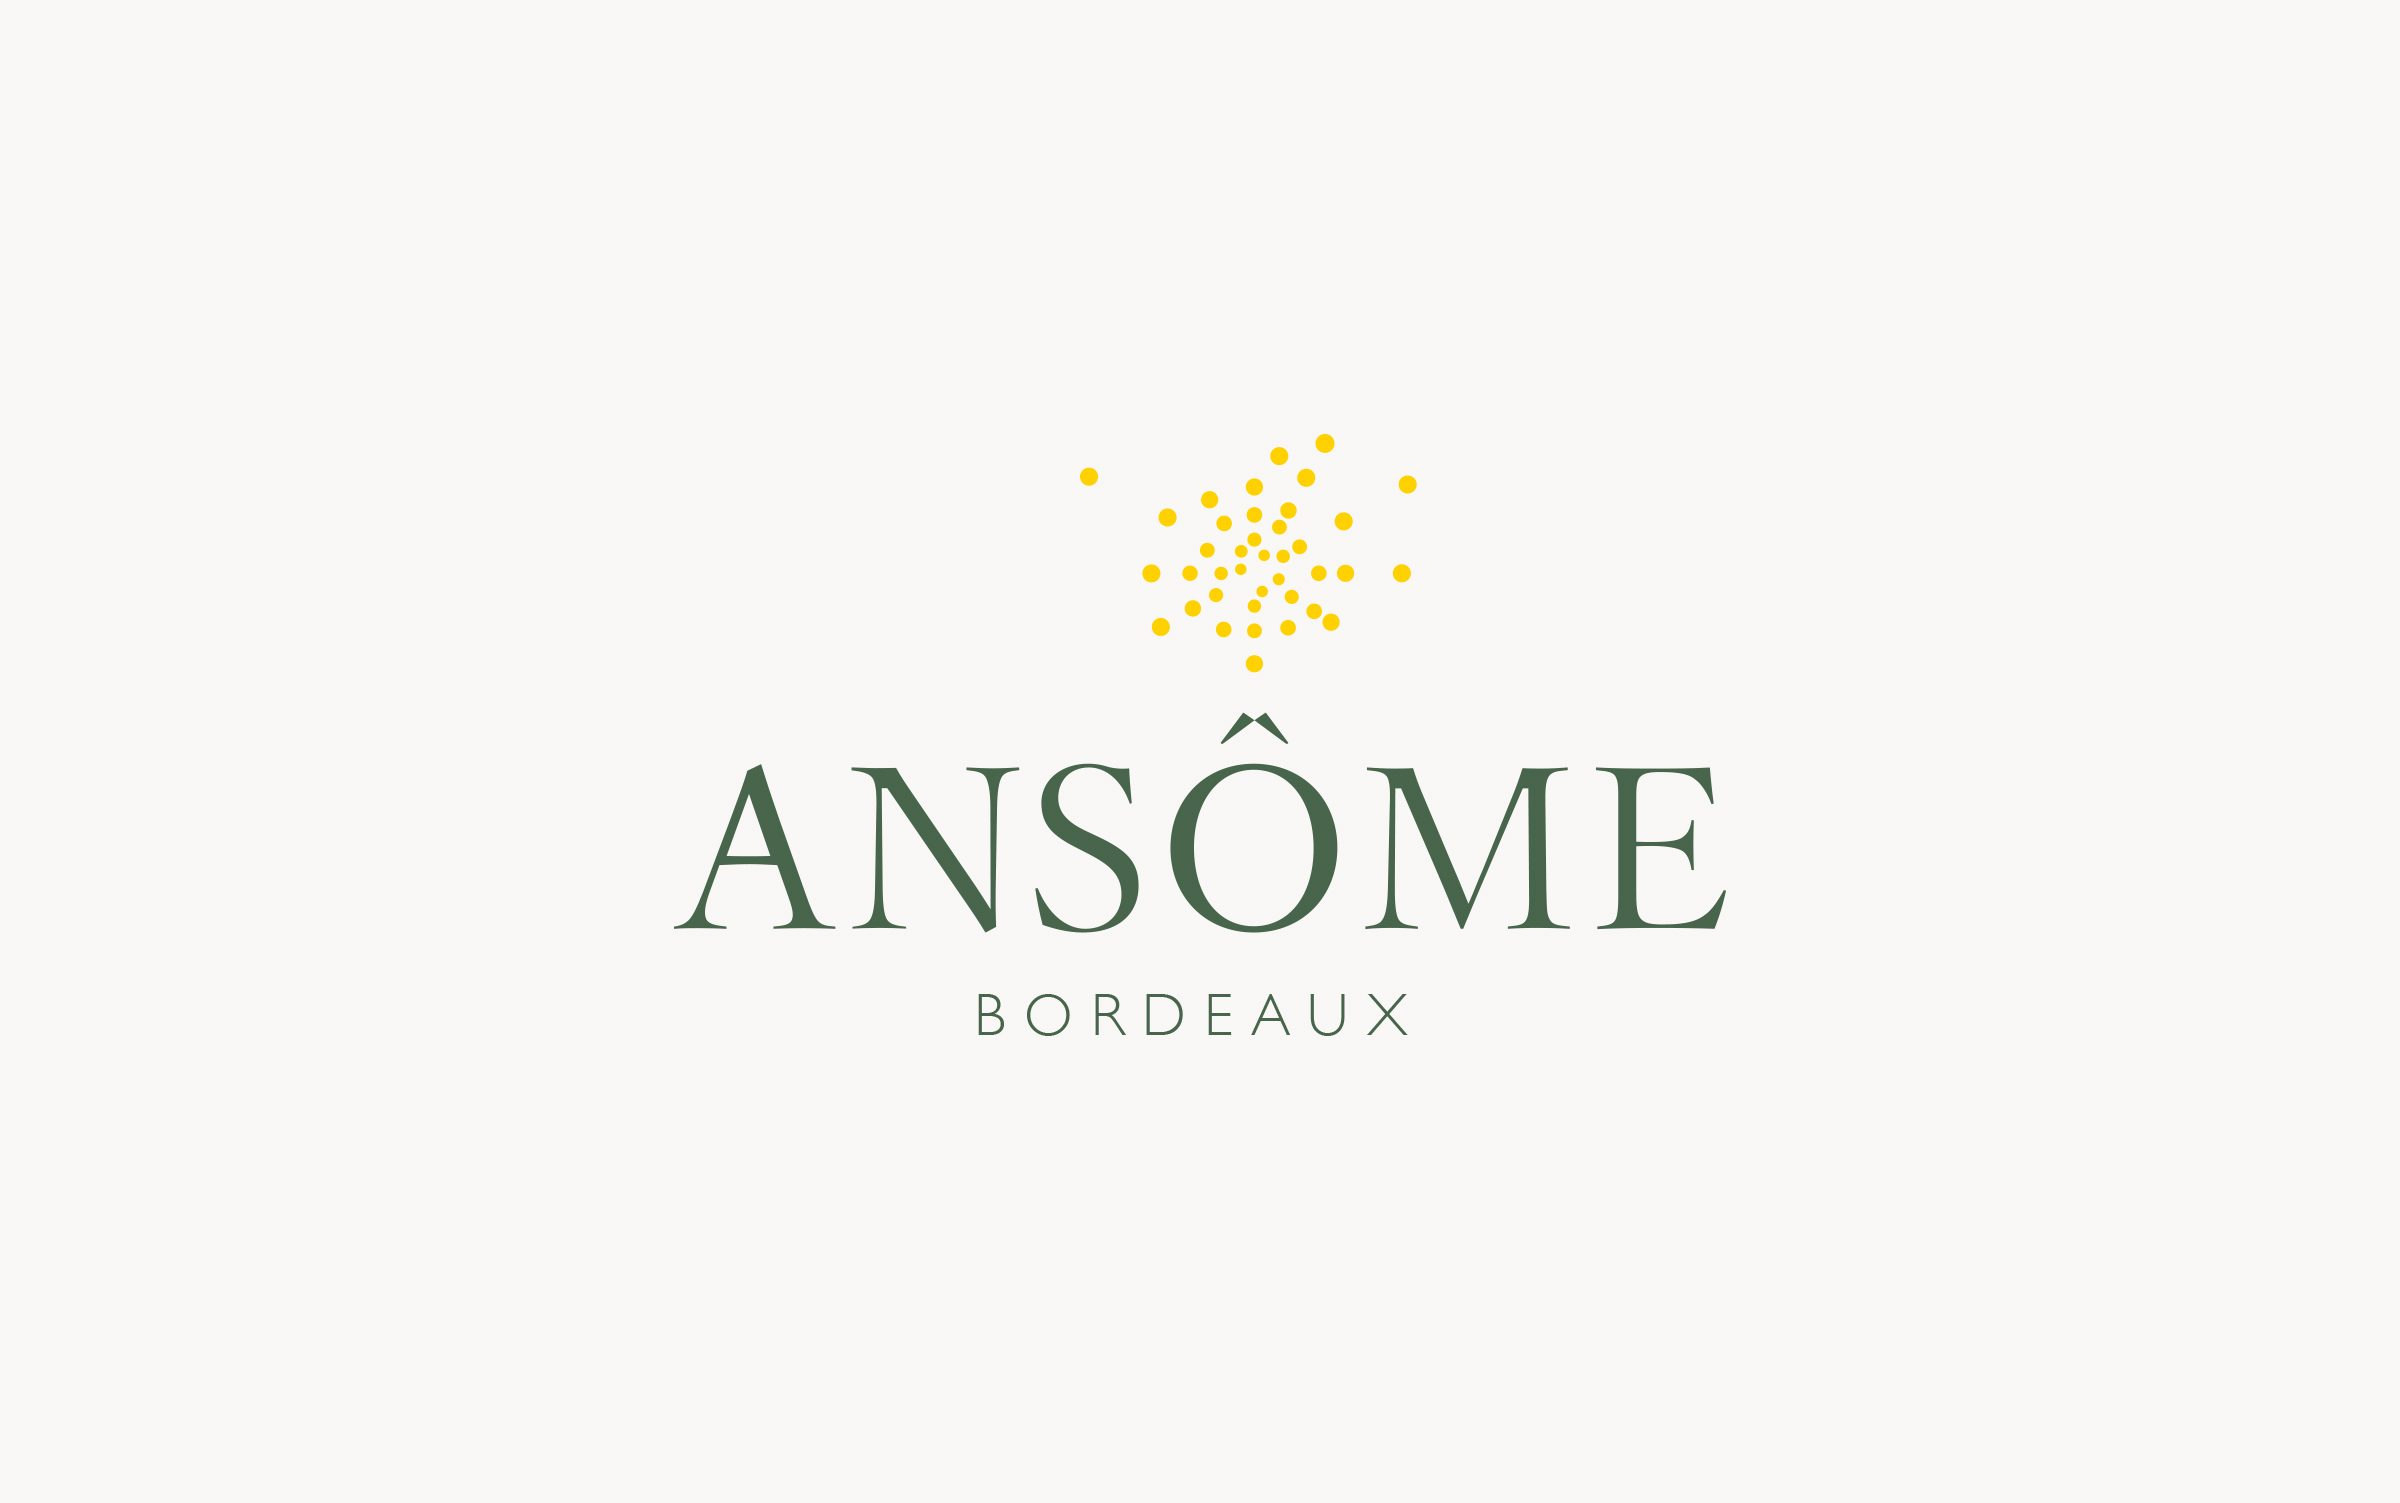 Ansome02